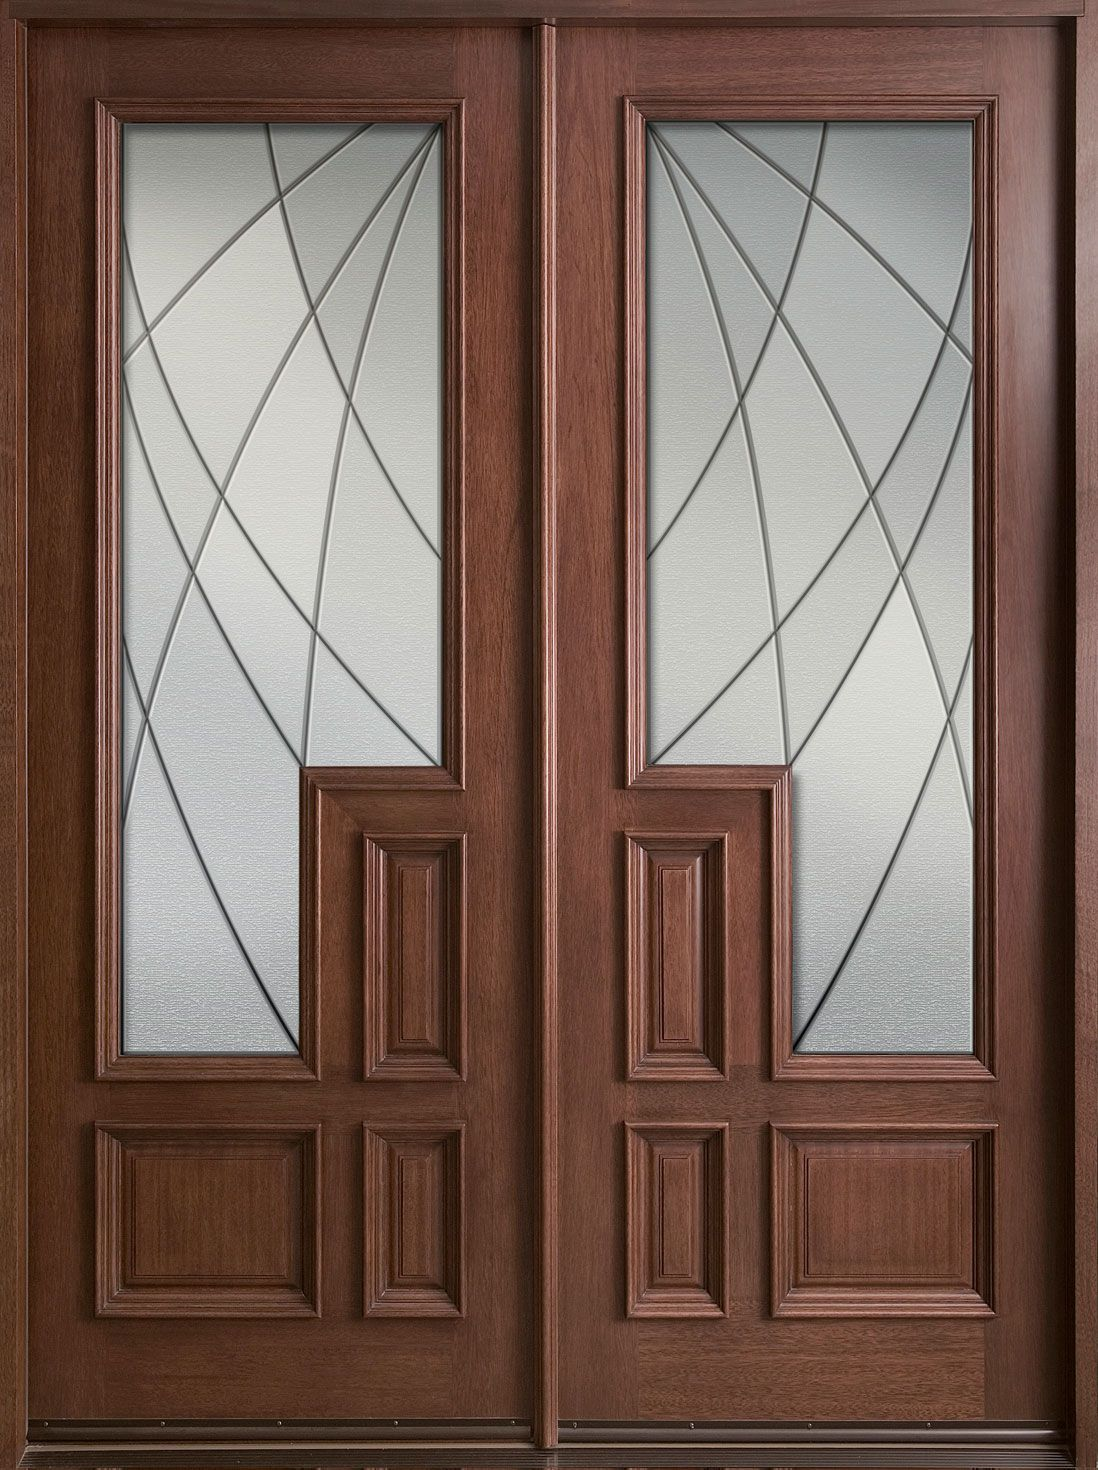 Inspiring Double Fiberglass Entry Door As Furniture For